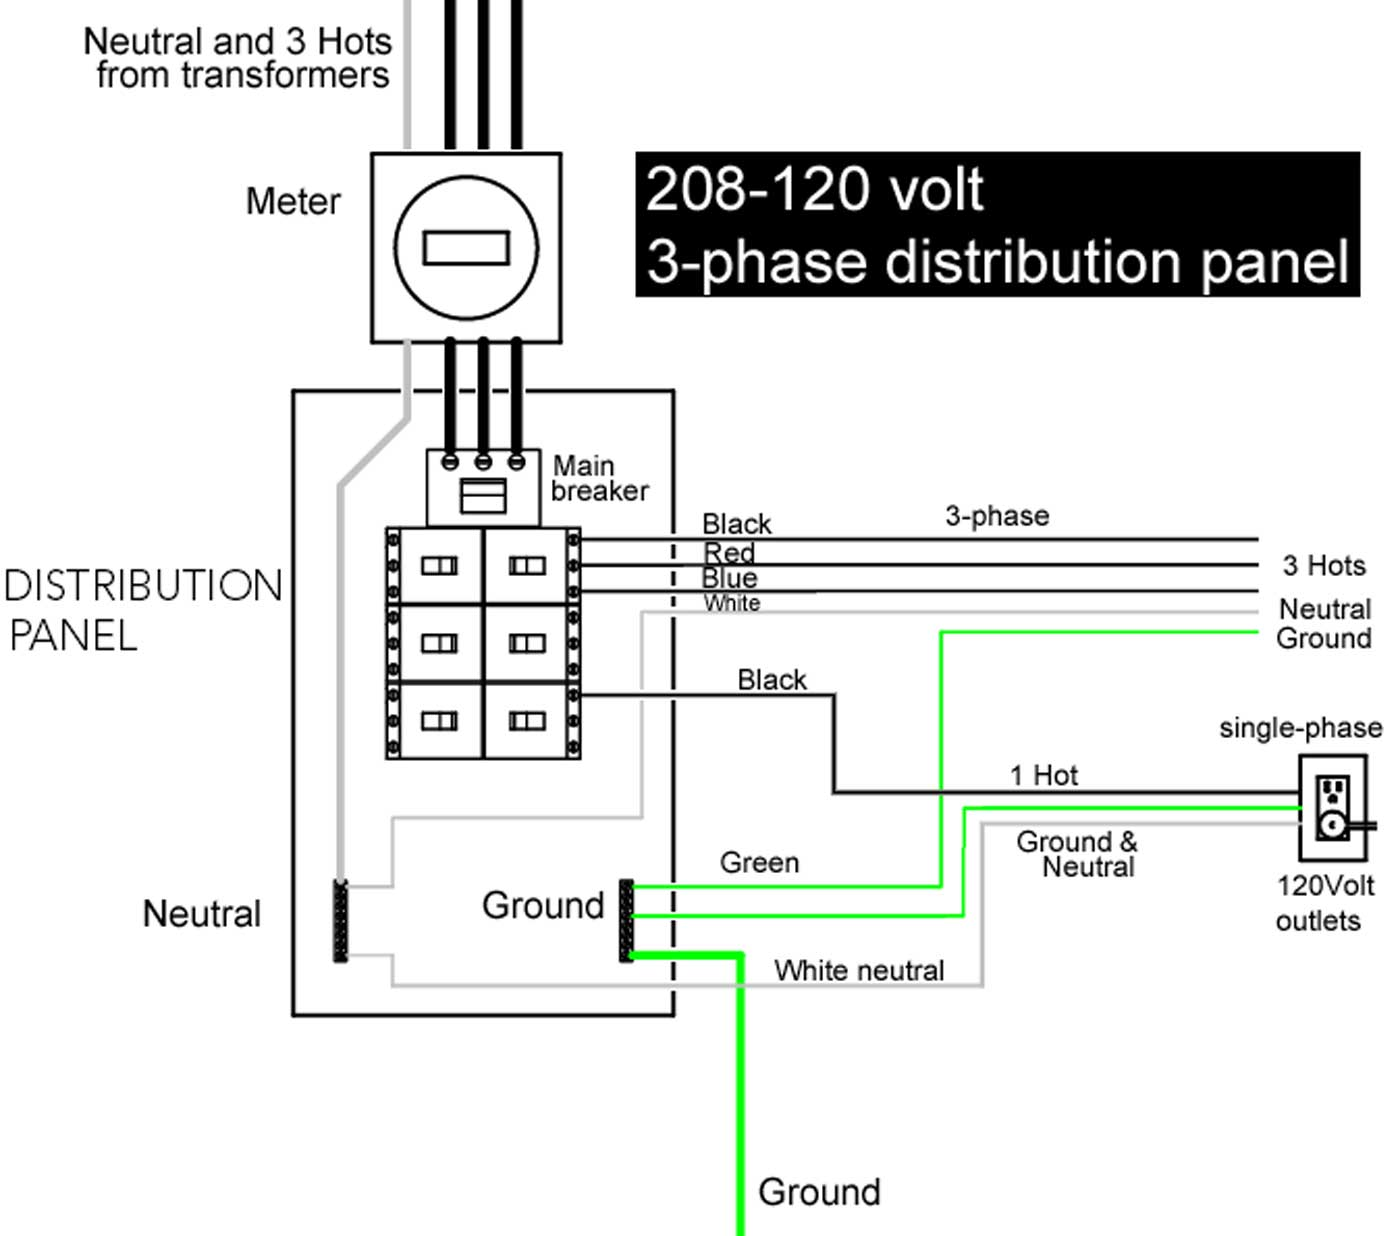 3 phase distribution panel distribution box wiring diagram mcb wiring connection diagram three phase wiring diagram breaker panel at bayanpartner.co